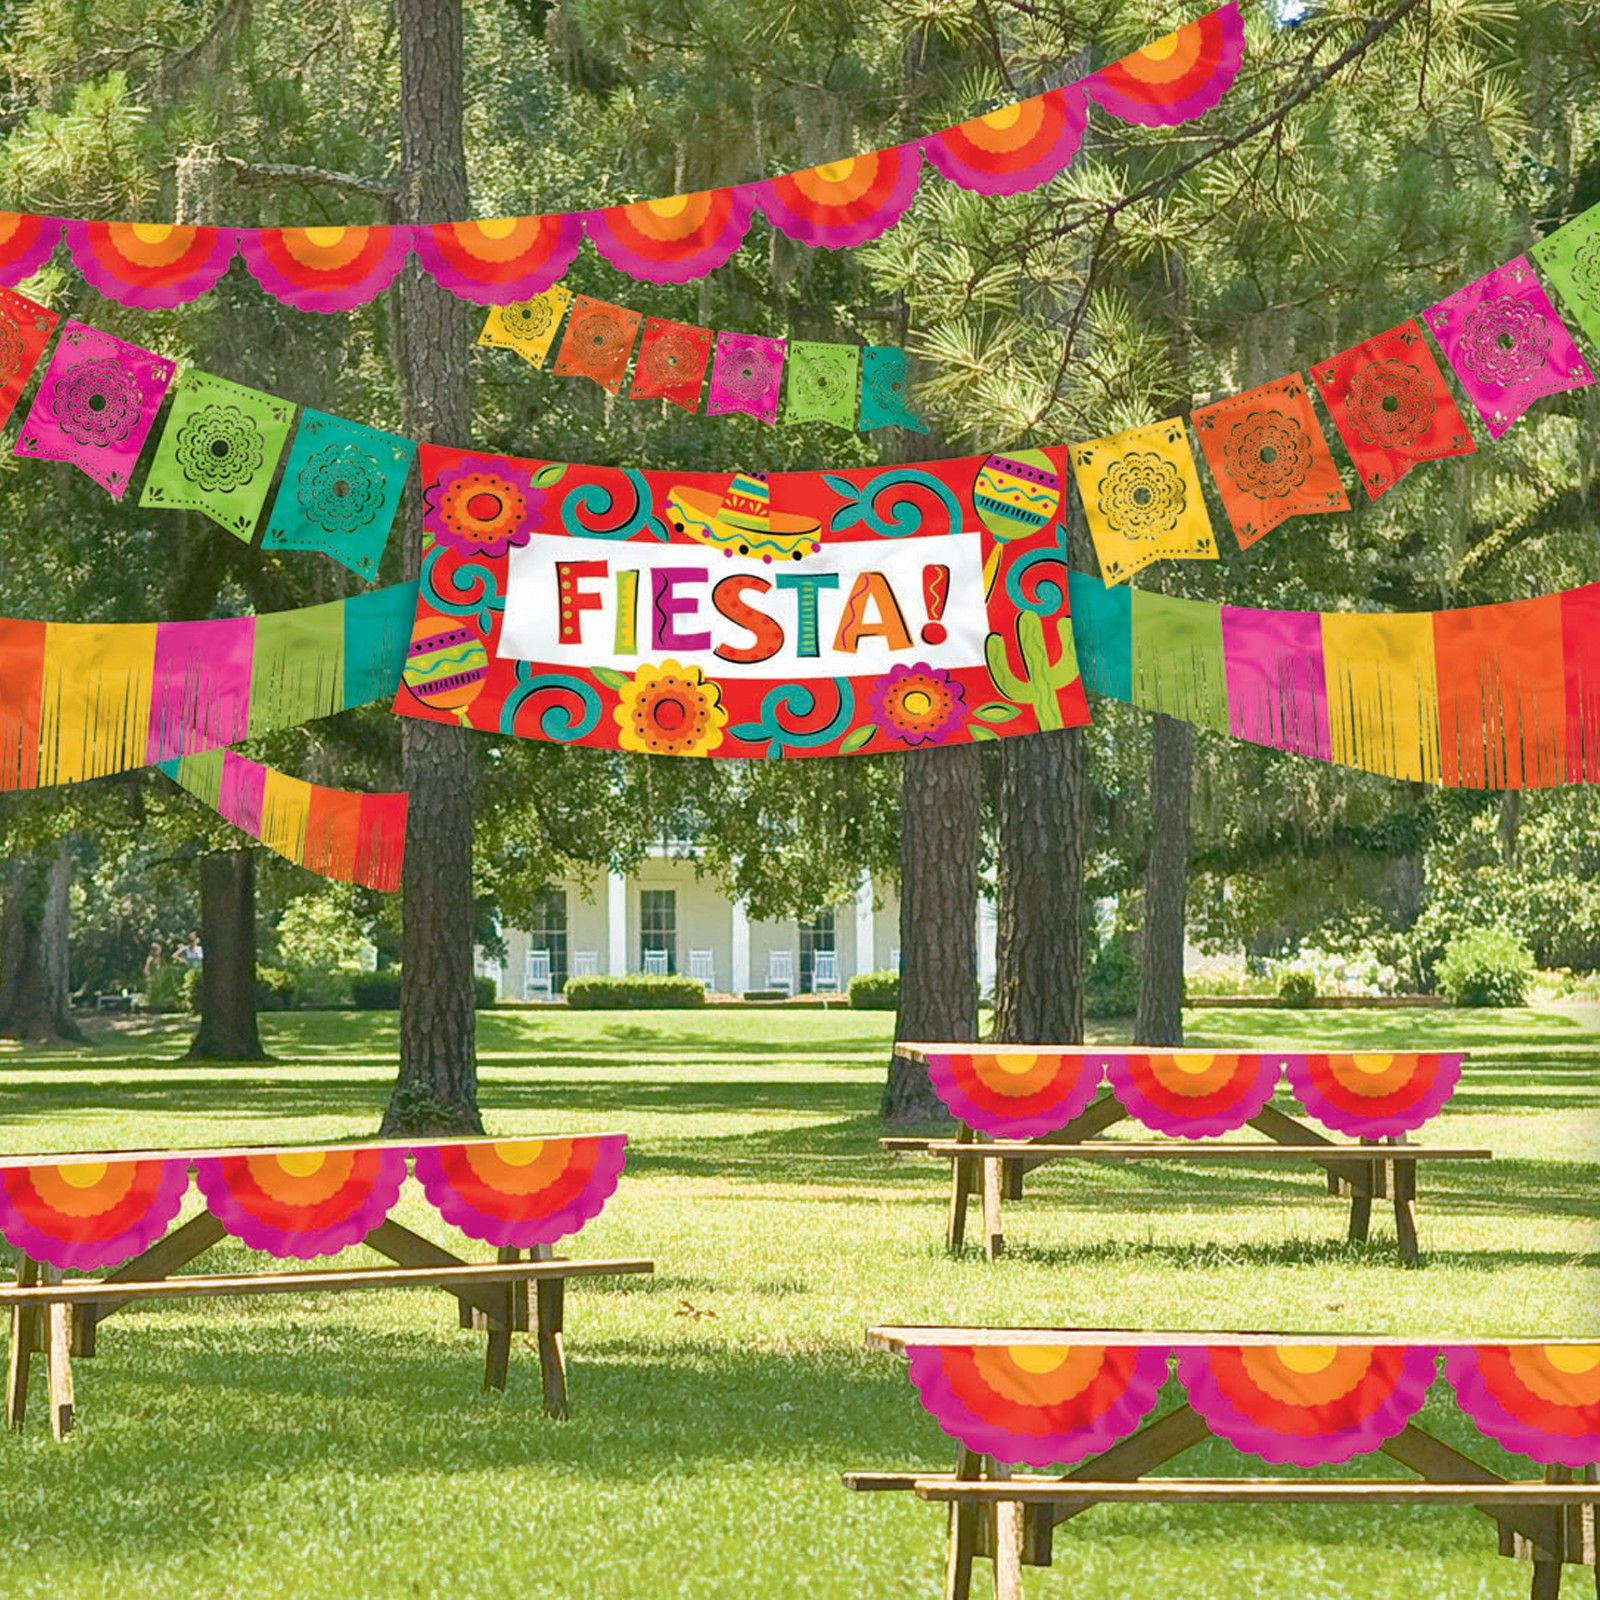 Fiesta table decorations ideas - Fiesta Decorating Kit 29 99 Includes 3 Banners Plastic Bunting